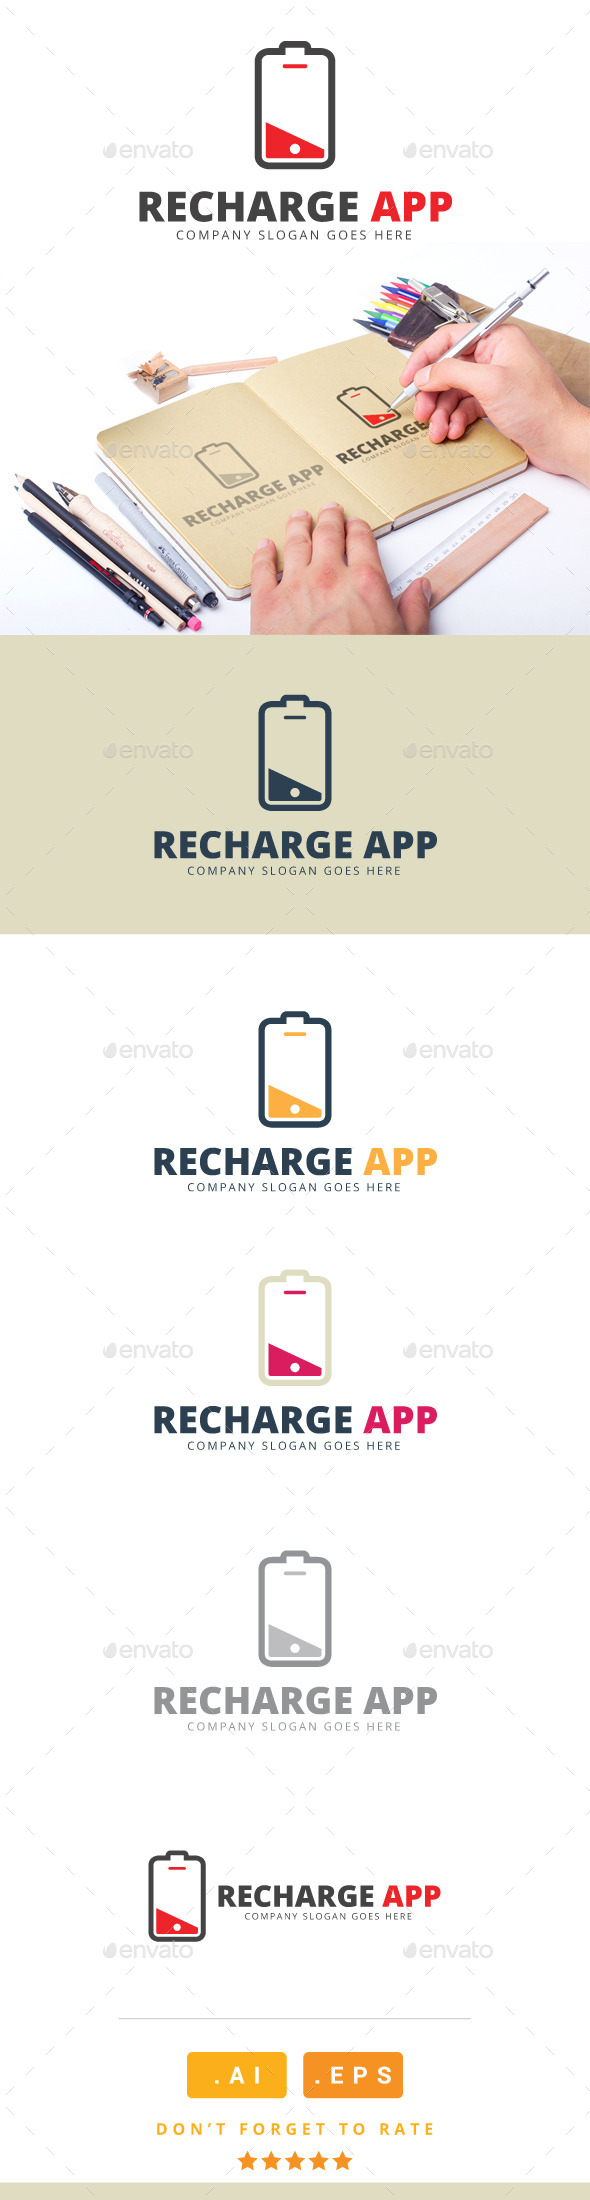 GraphicRiver Recharge App Logo 11201640